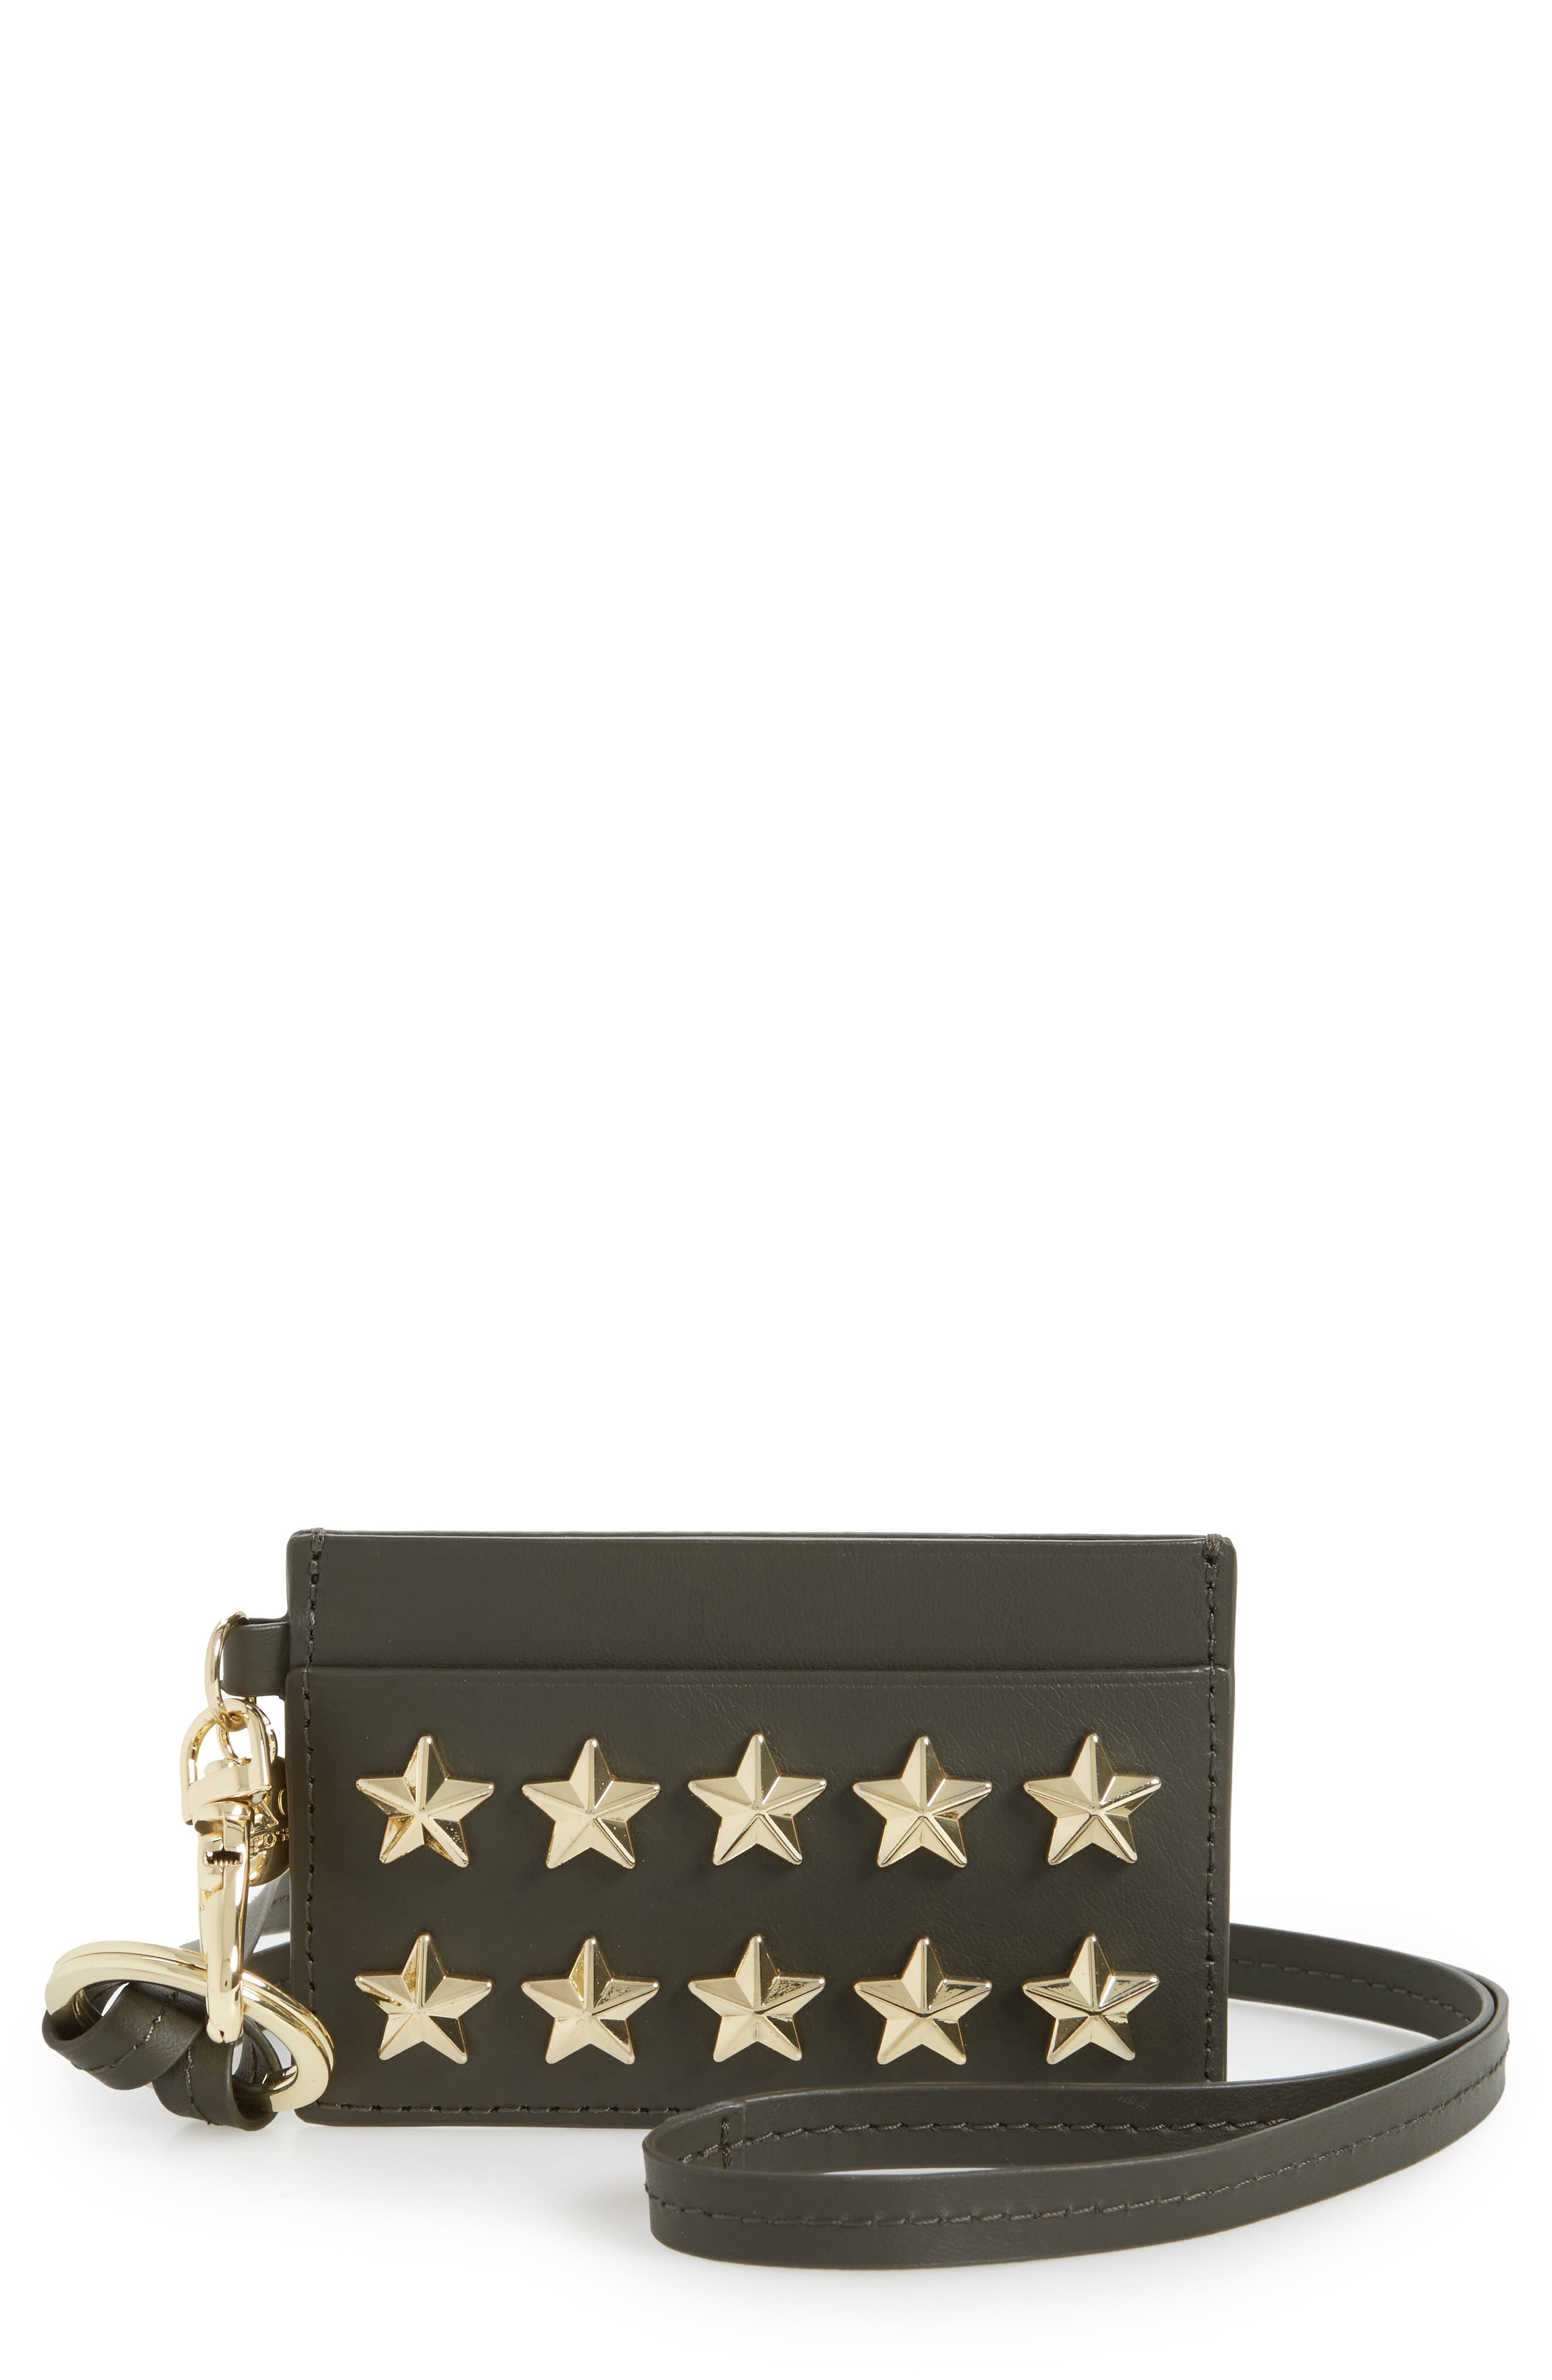 Star Stud Earthette Leather Lanyard,                         Main,                         color, Forest